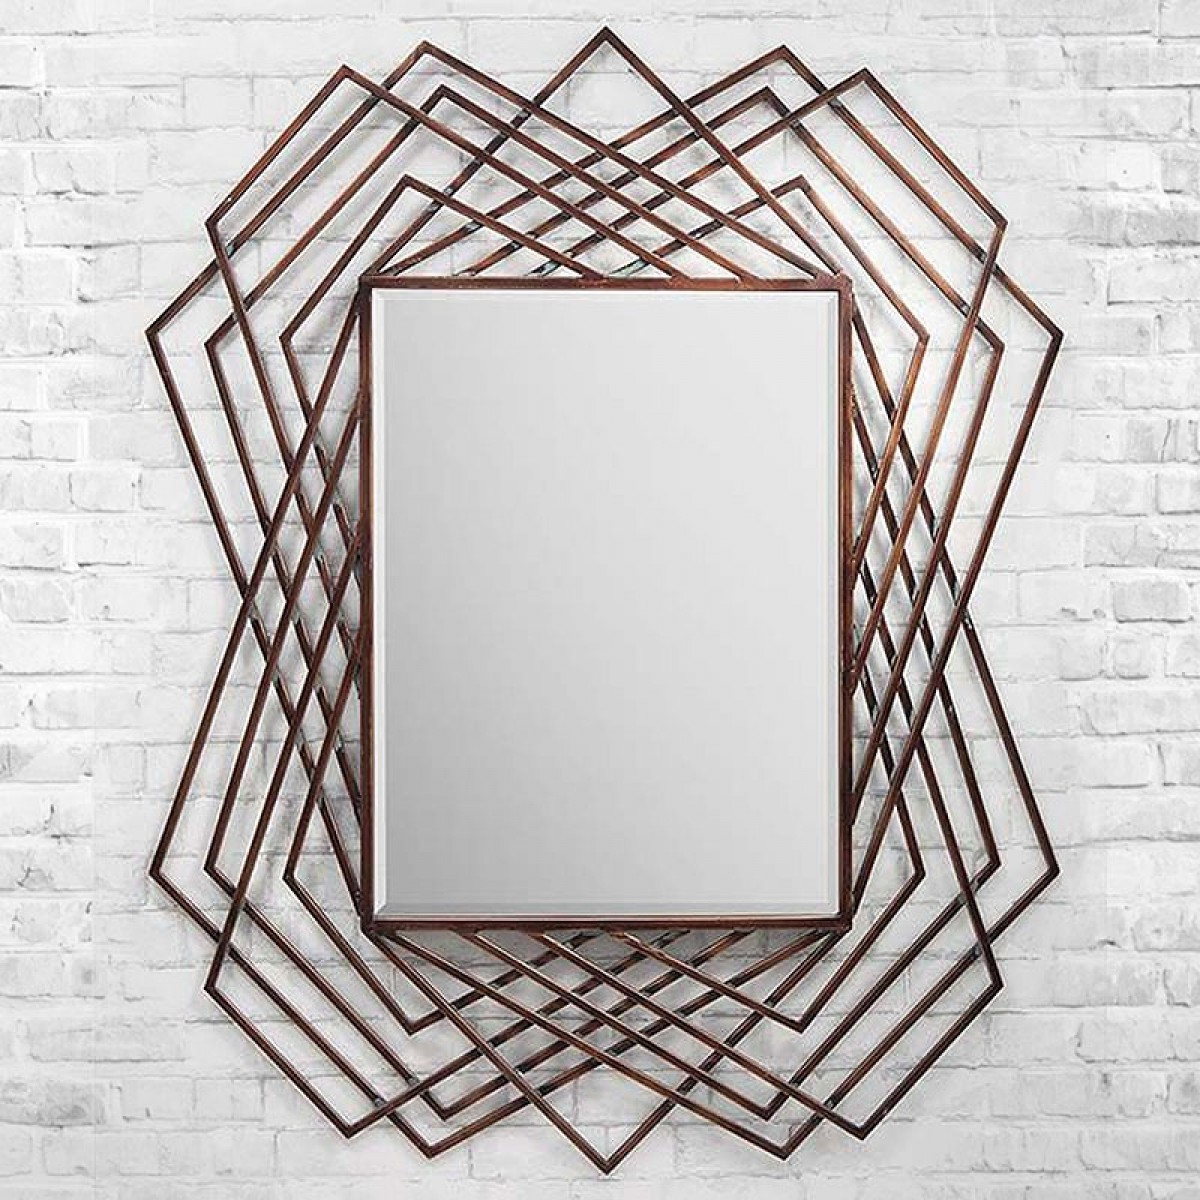 Copper Geometric Wall Mirror – 94 X 121cm Within Most Recently Released Geometric Wall Mirrors (View 10 of 20)